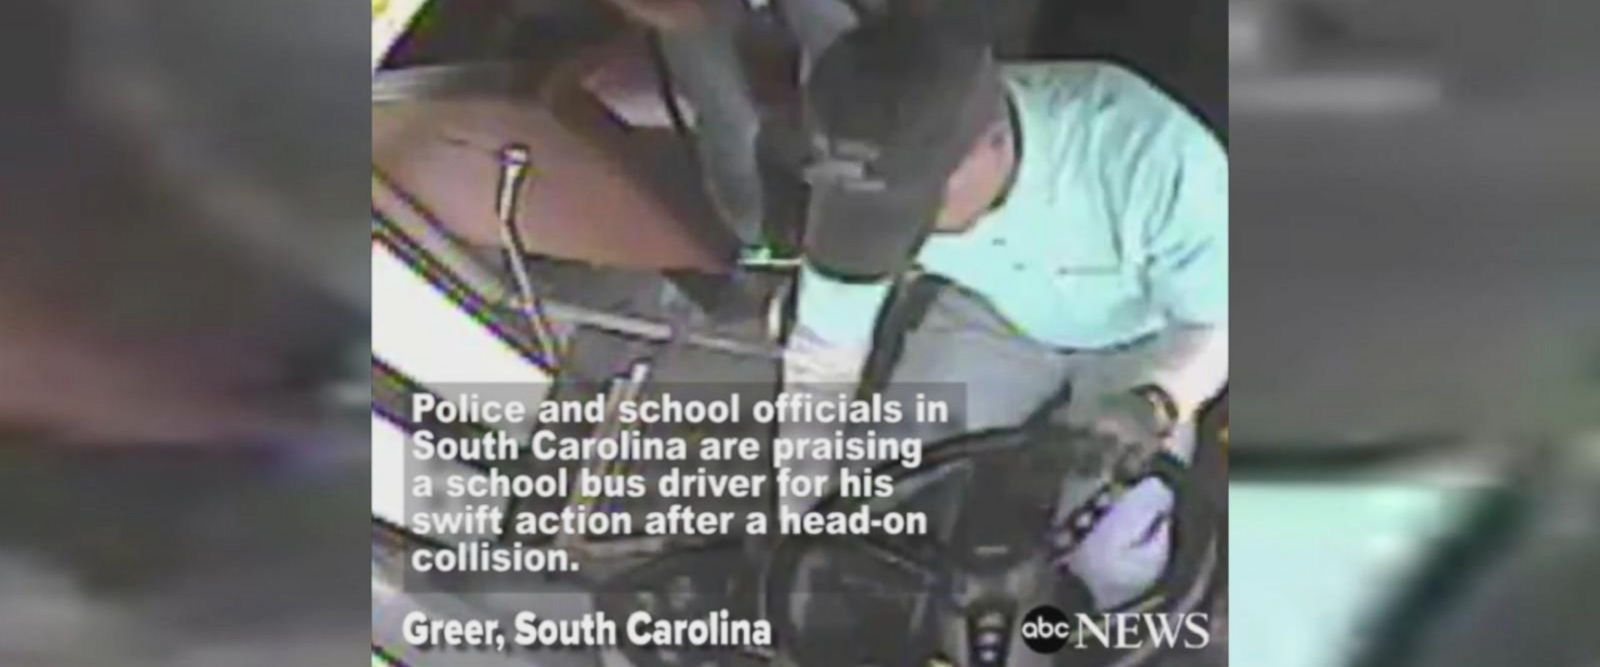 VIDEO: South Carolina school officials, police praise school bus driver for actions after head-on collision